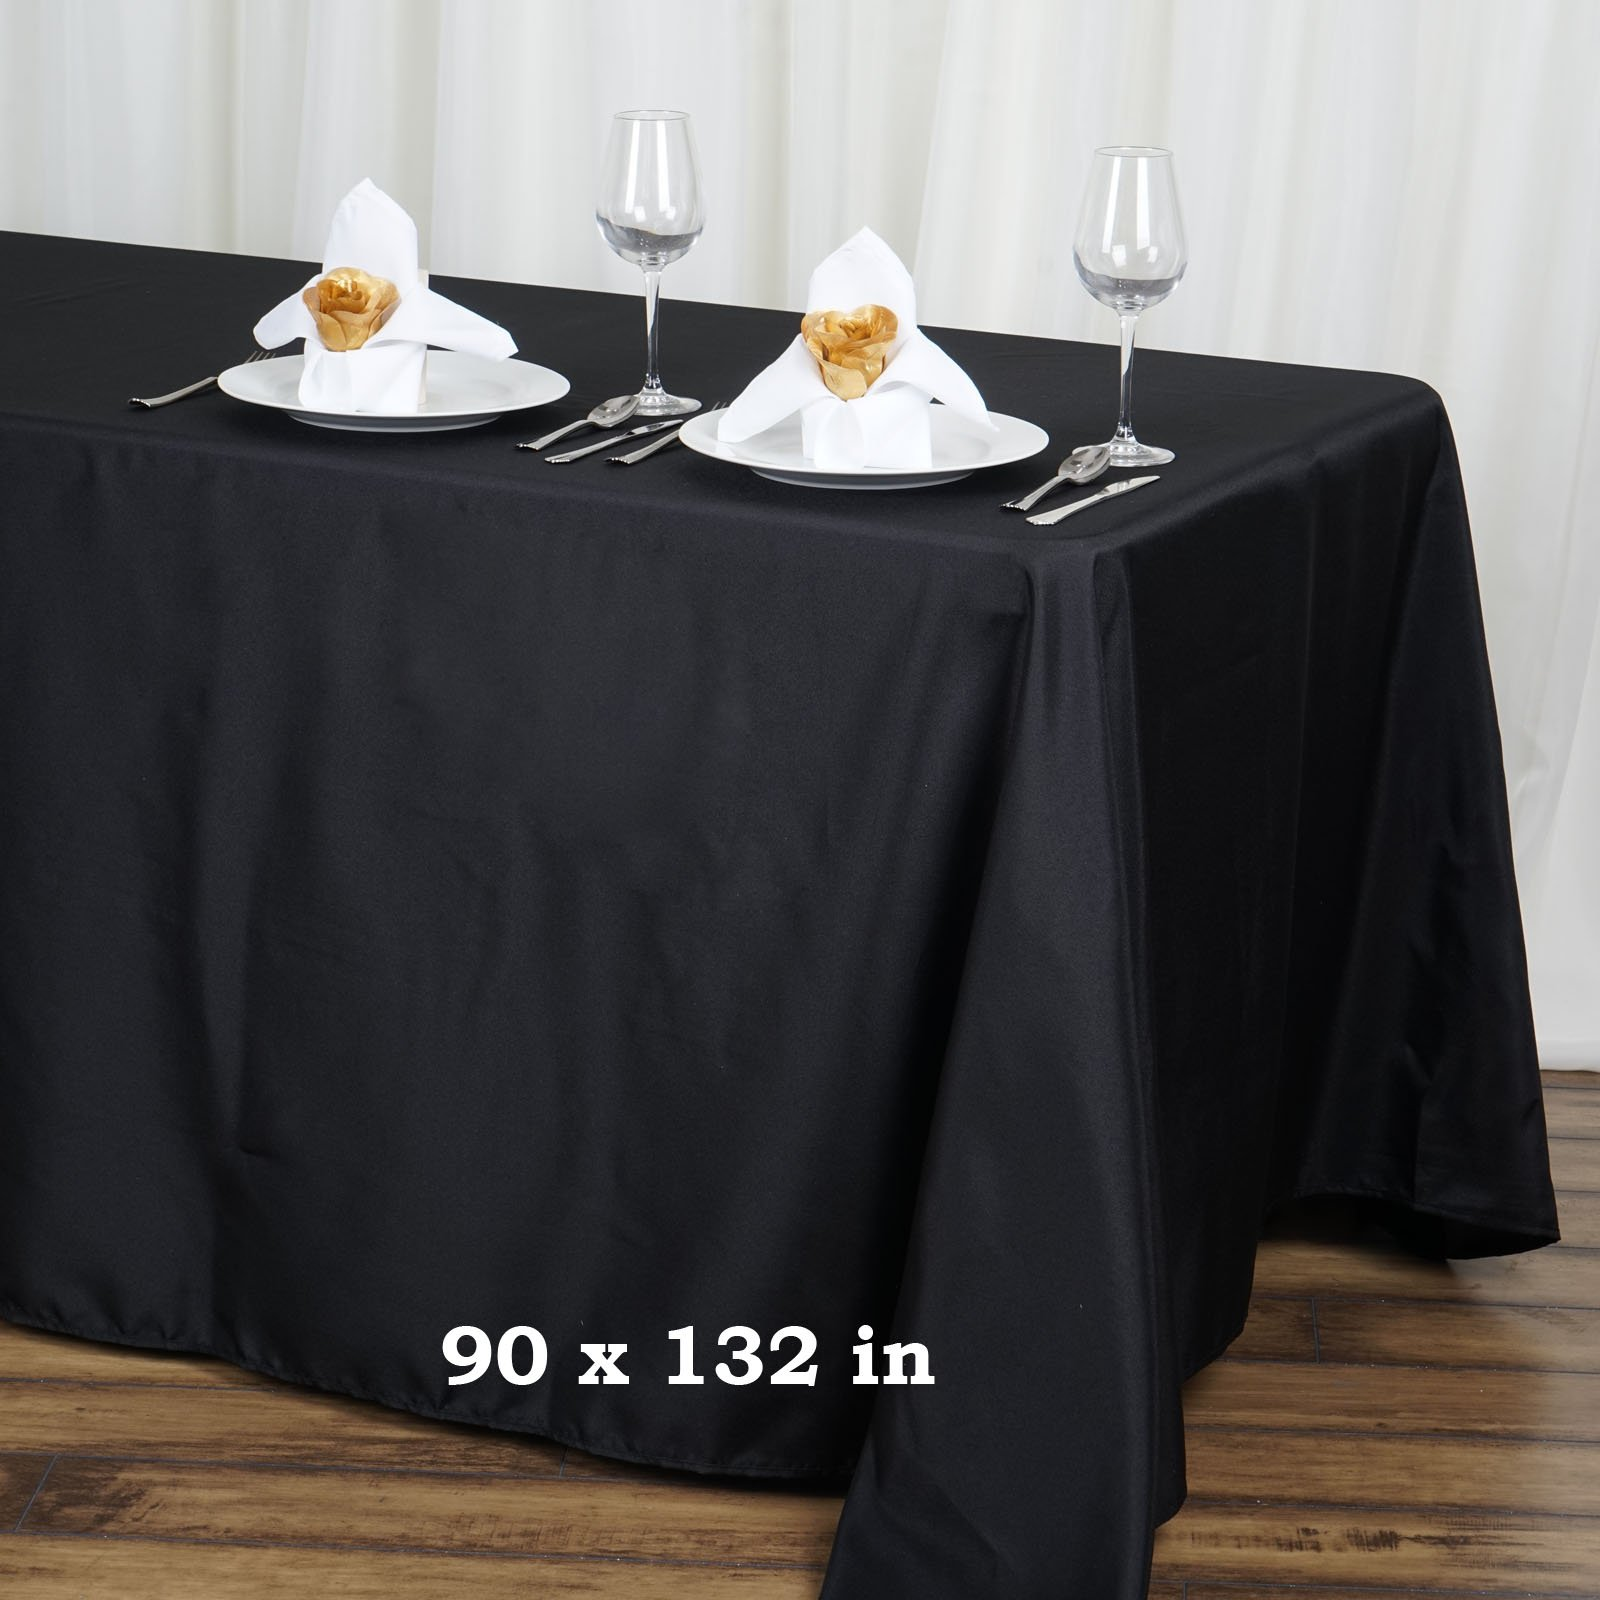 LinenTablecloth 90 x 132-Inch Rectangular Polyester Tablecloth with rounded corners Black